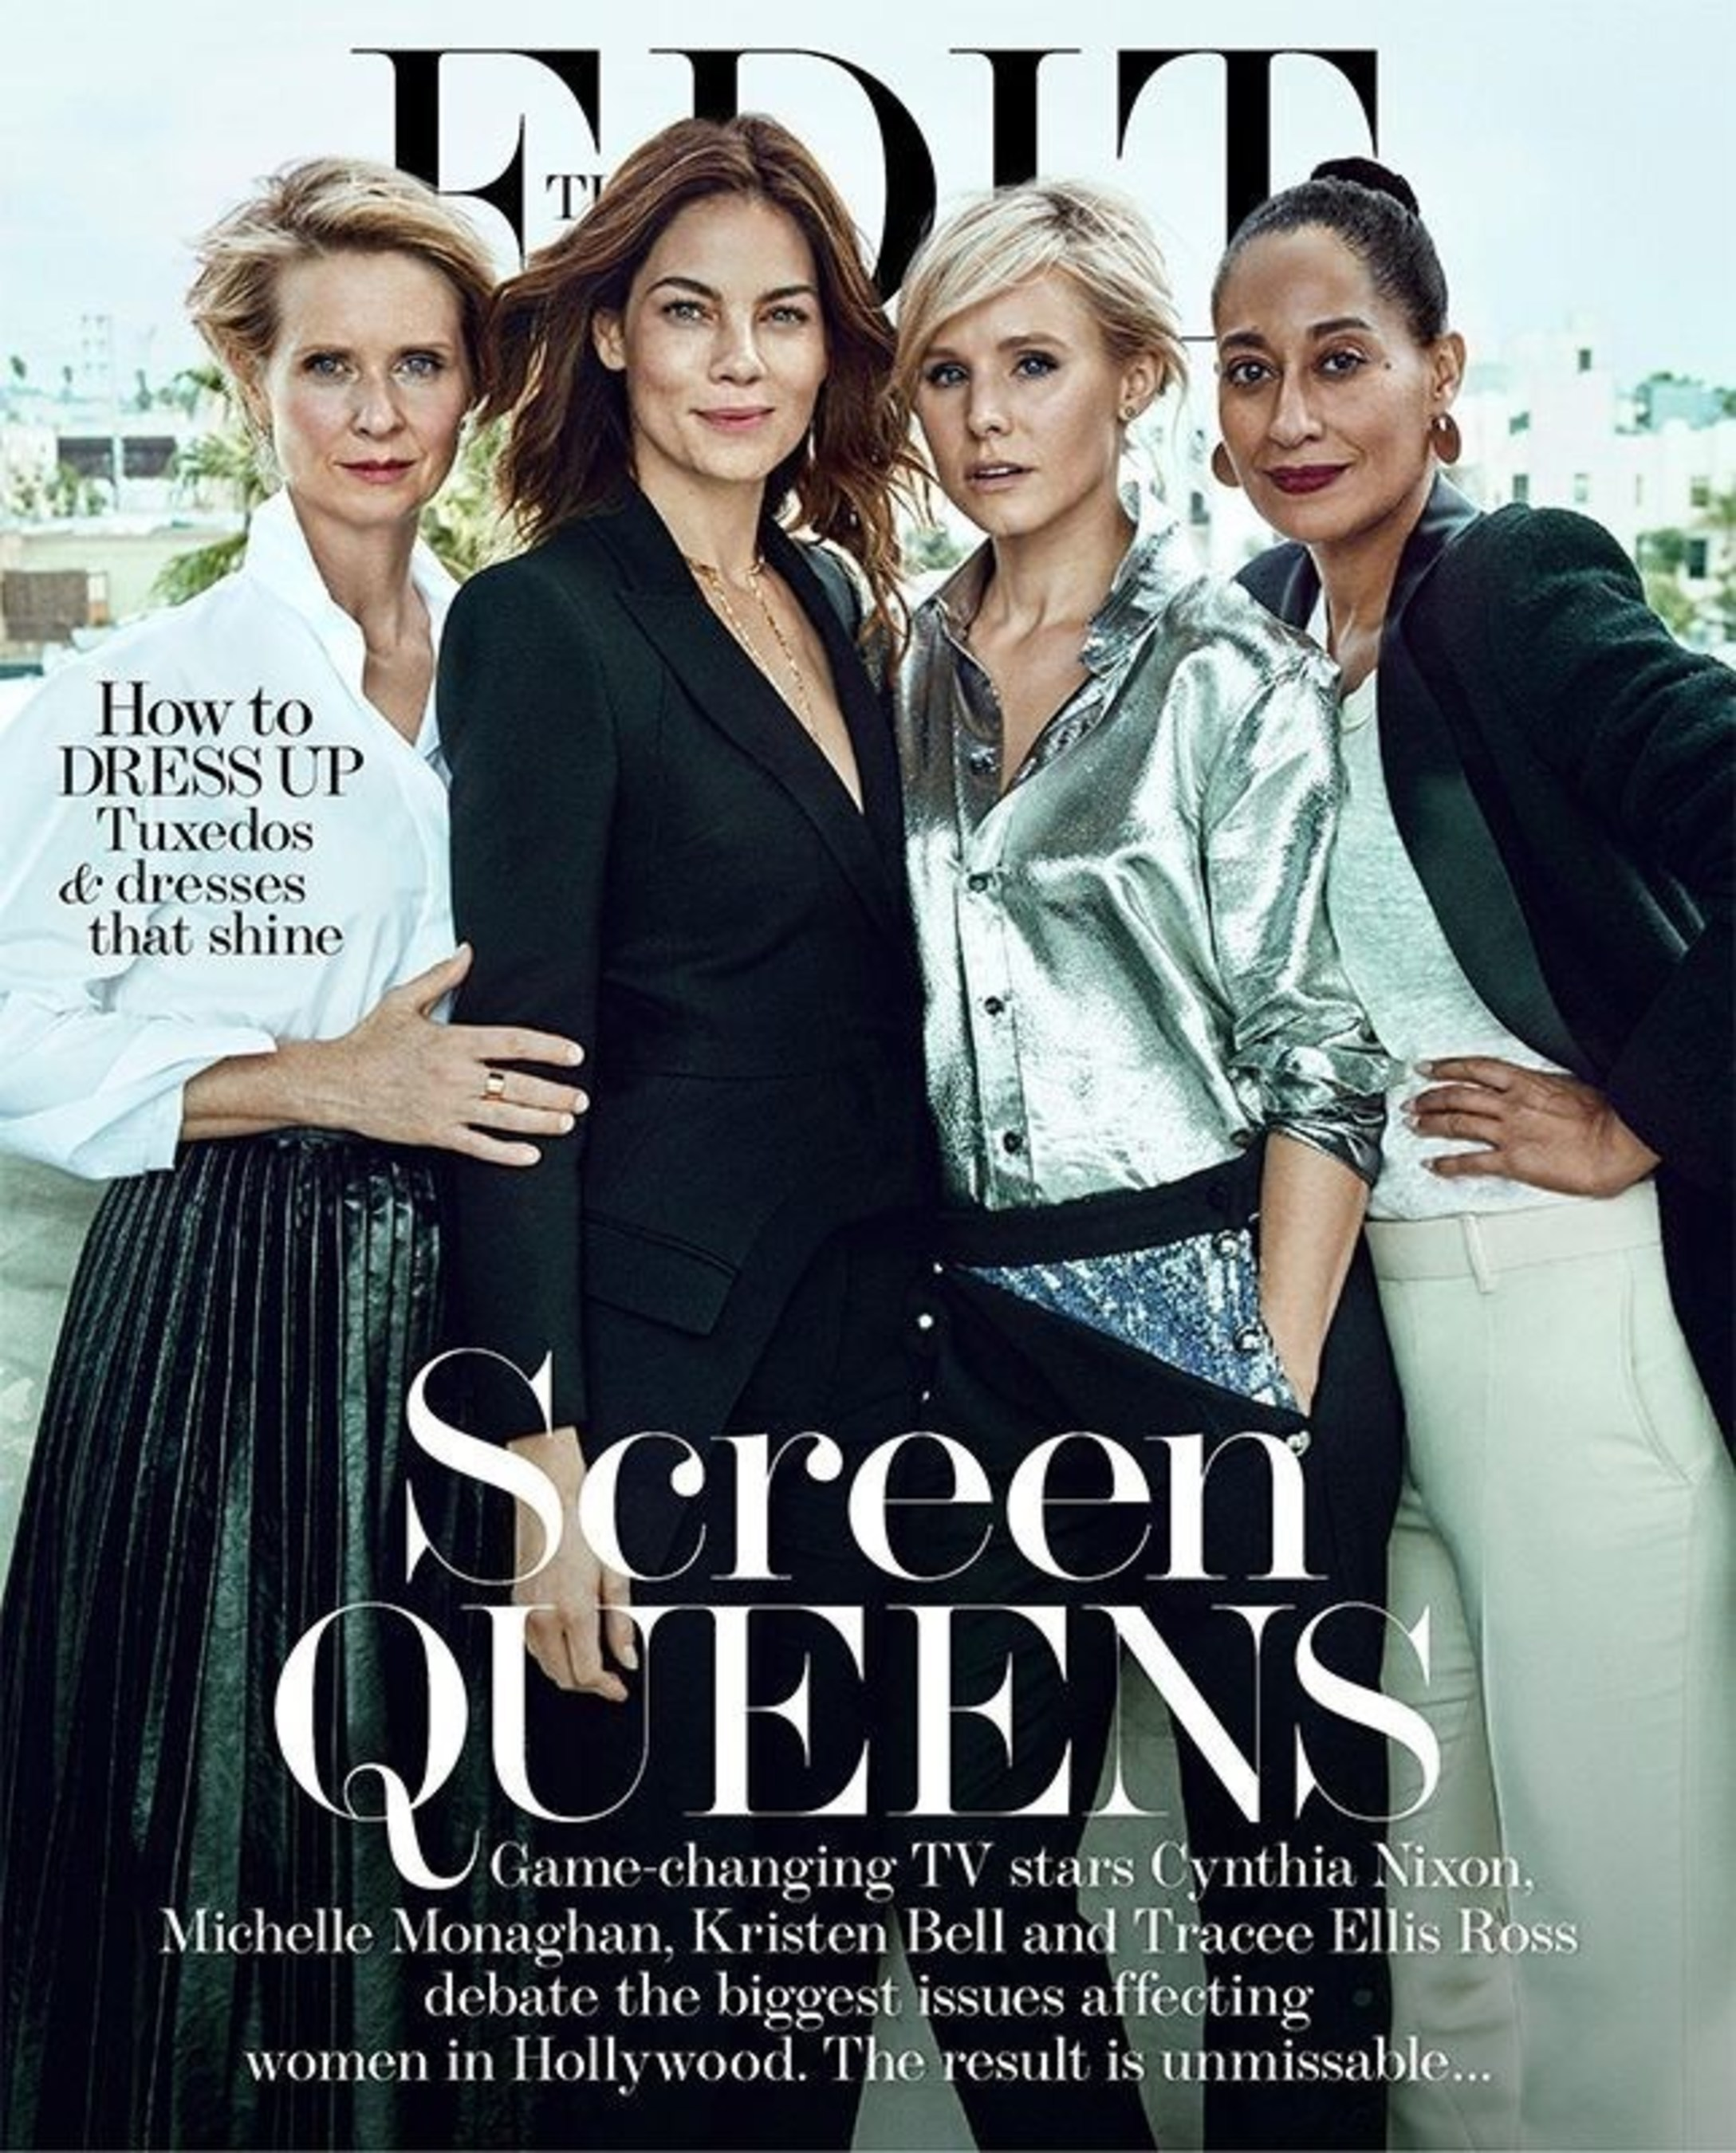 Watch Cynthia Nixon, Michelle Monaghan, Kristen Bell and Tracee Ellis Ross debate Hollywood TV's key issues in NET-A-PORTER's digital magazine, The EDIT.